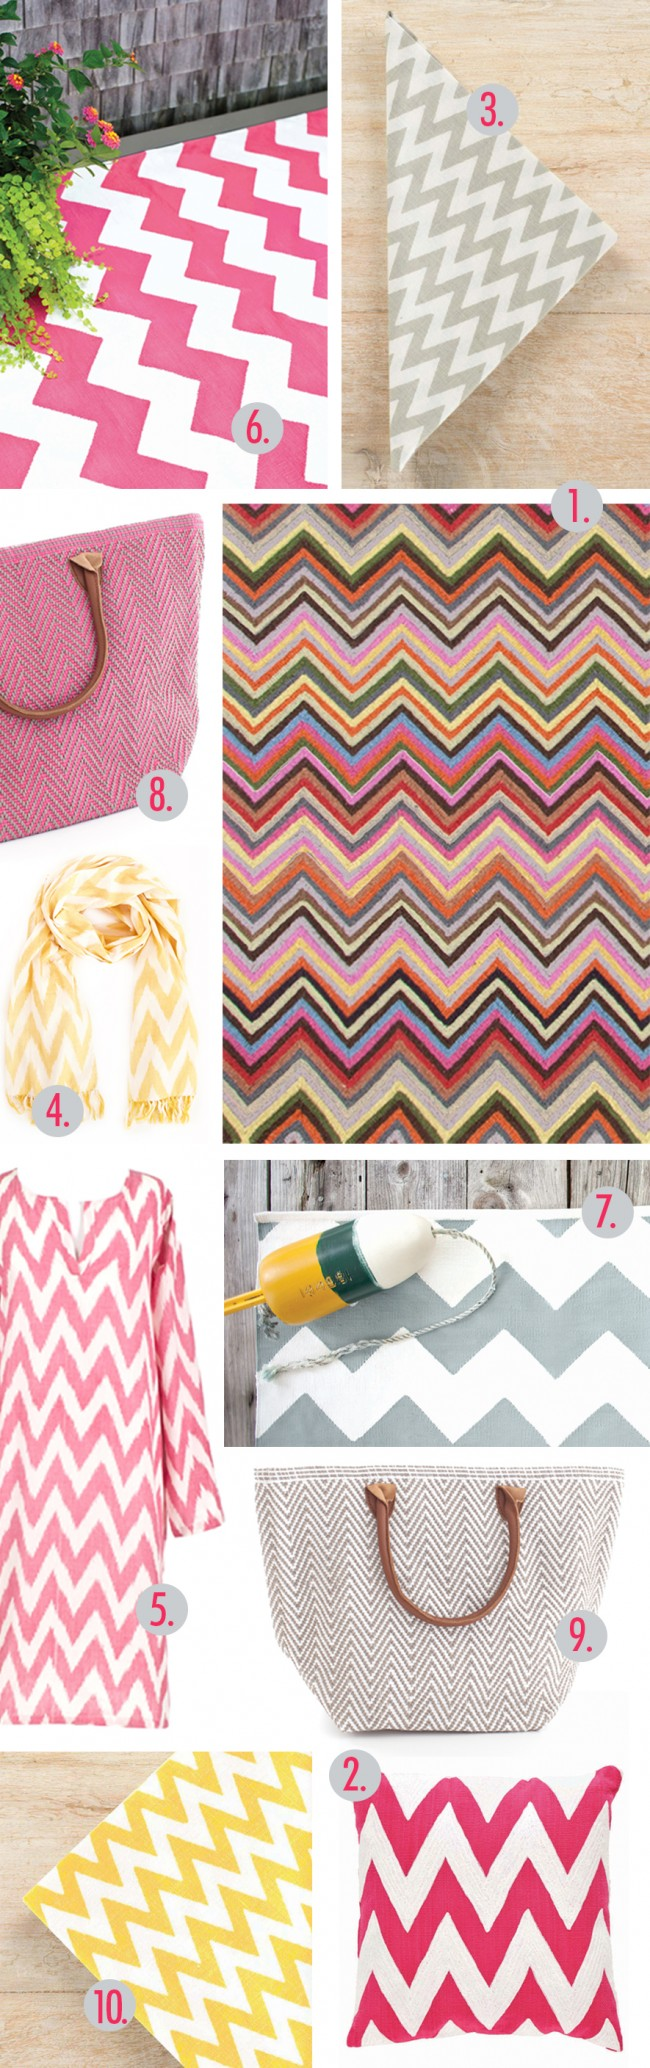 Fuchsia Chevron rug Chevron multi rug chevron scarf chevron light blue chevron kaftan chevron napkin chevron pillow